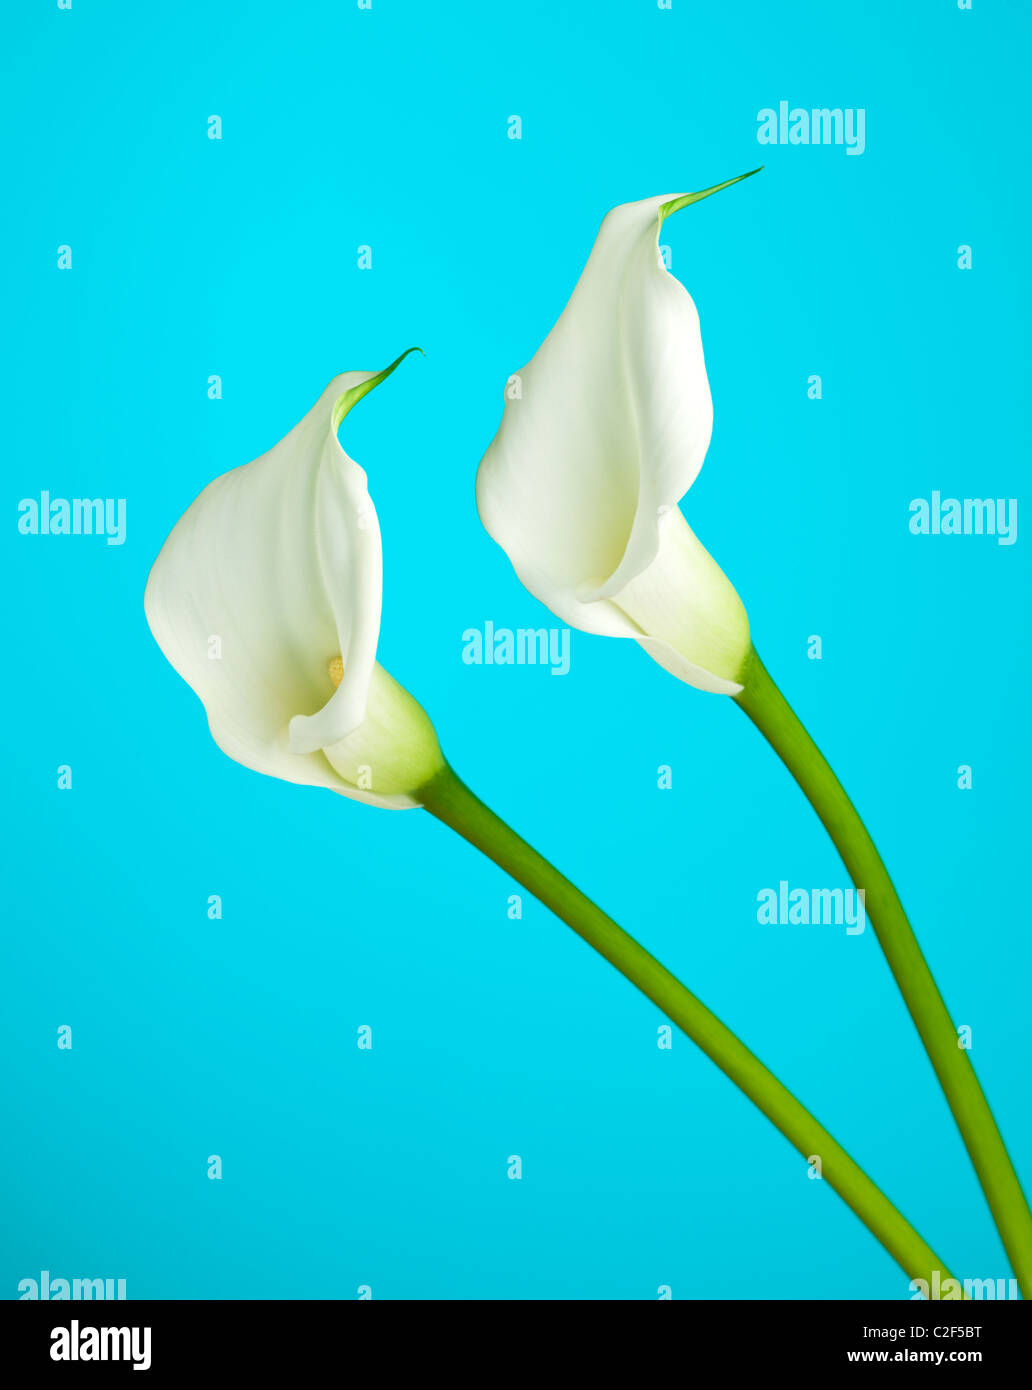 White Calla Lily Flowers Stock Photos White Calla Lily Flowers